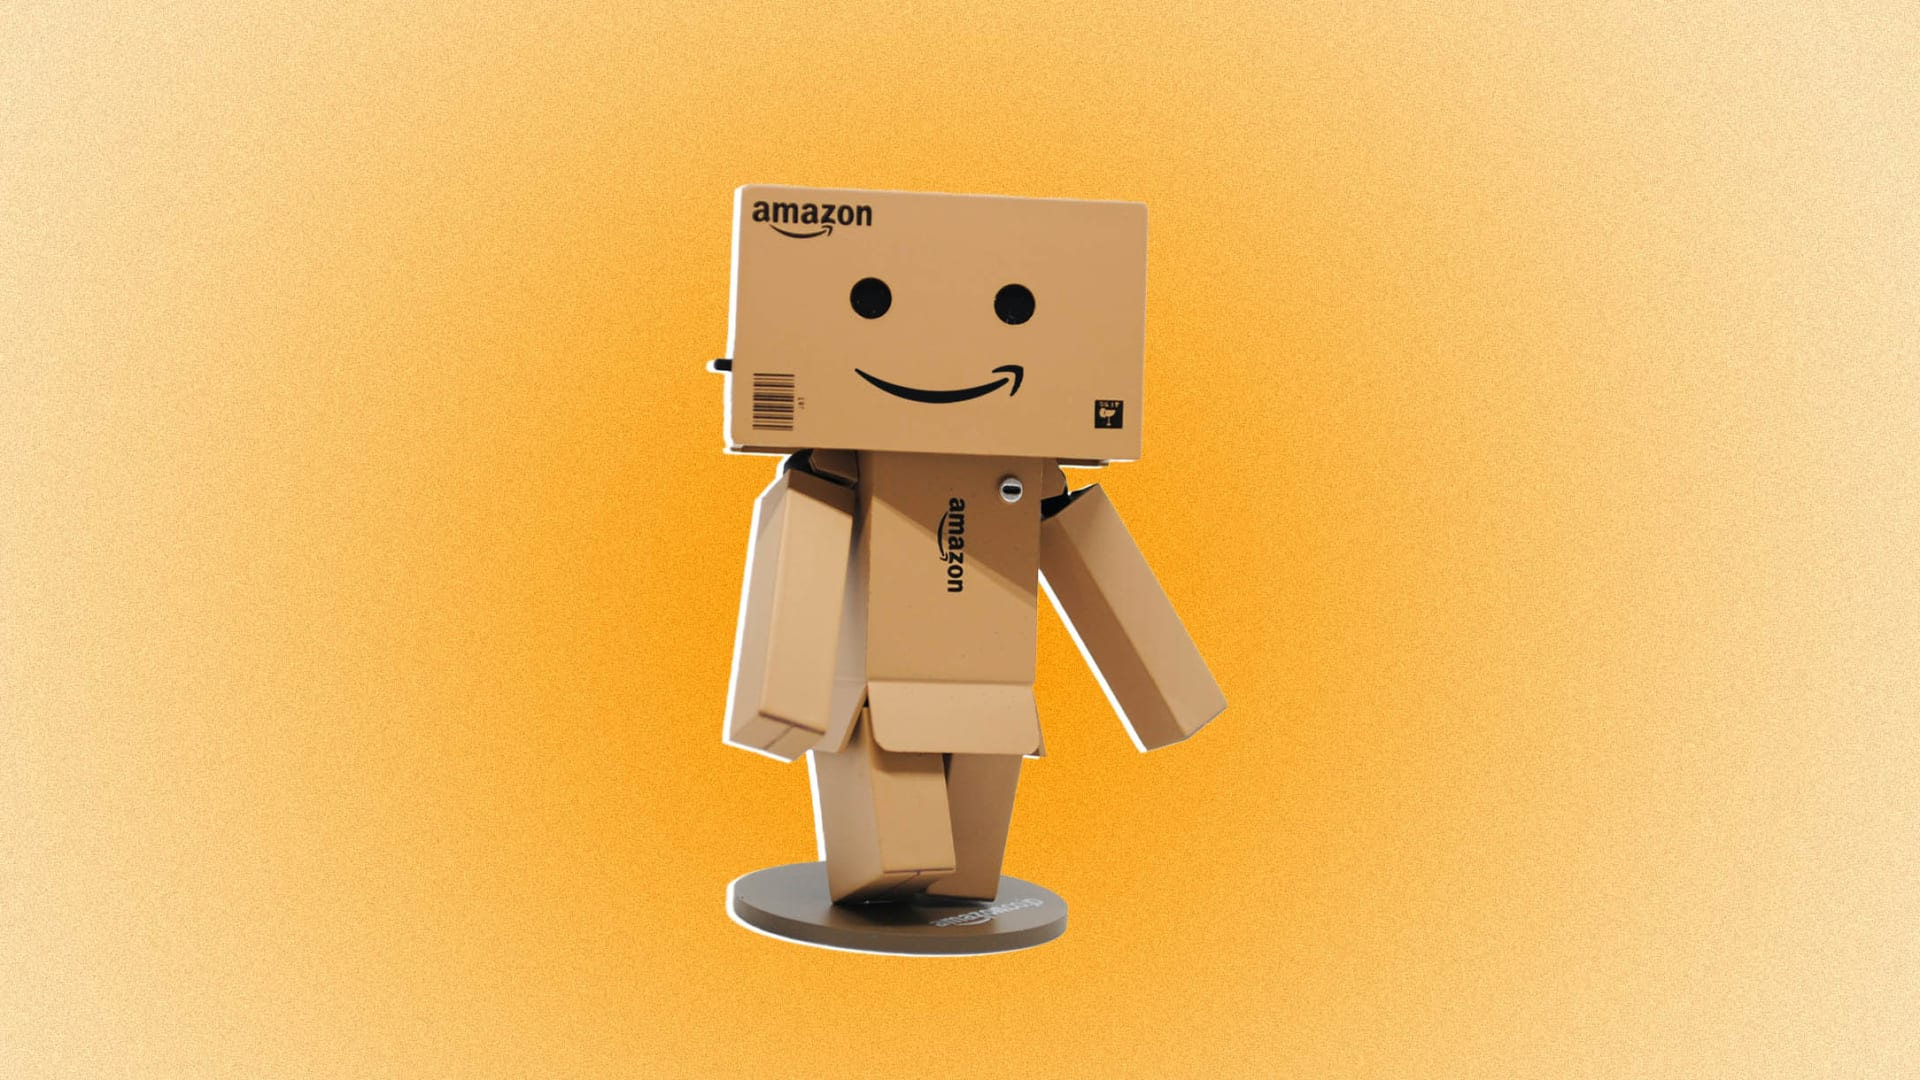 5 Ways Amazon Creates New Products That Customers Crave